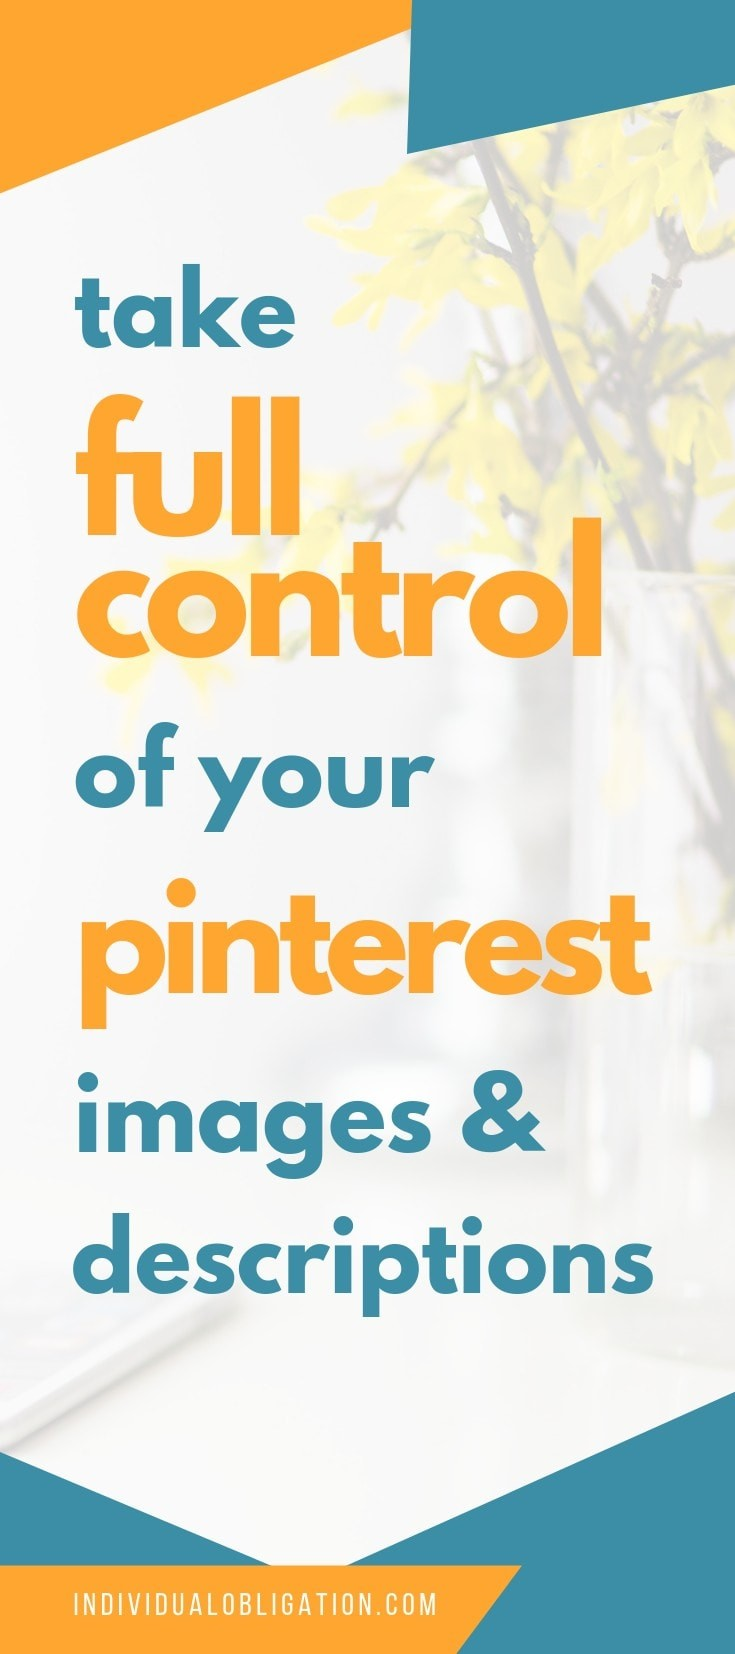 Pinterest marketing strategy for taking full control of Pinterest descriptions